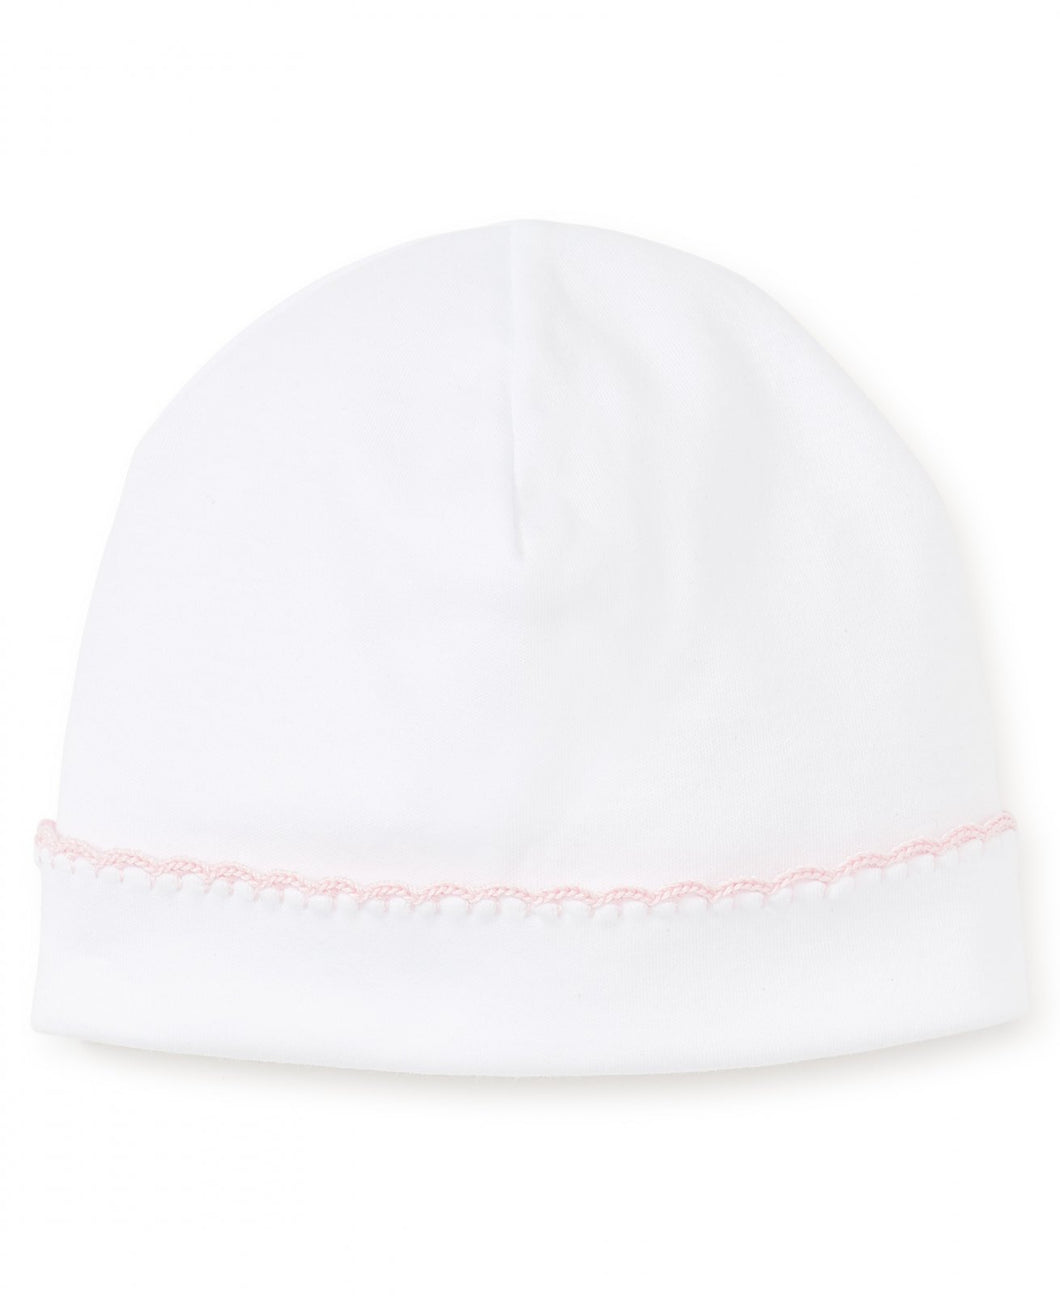 New Premier Basics Hat - White with Pink